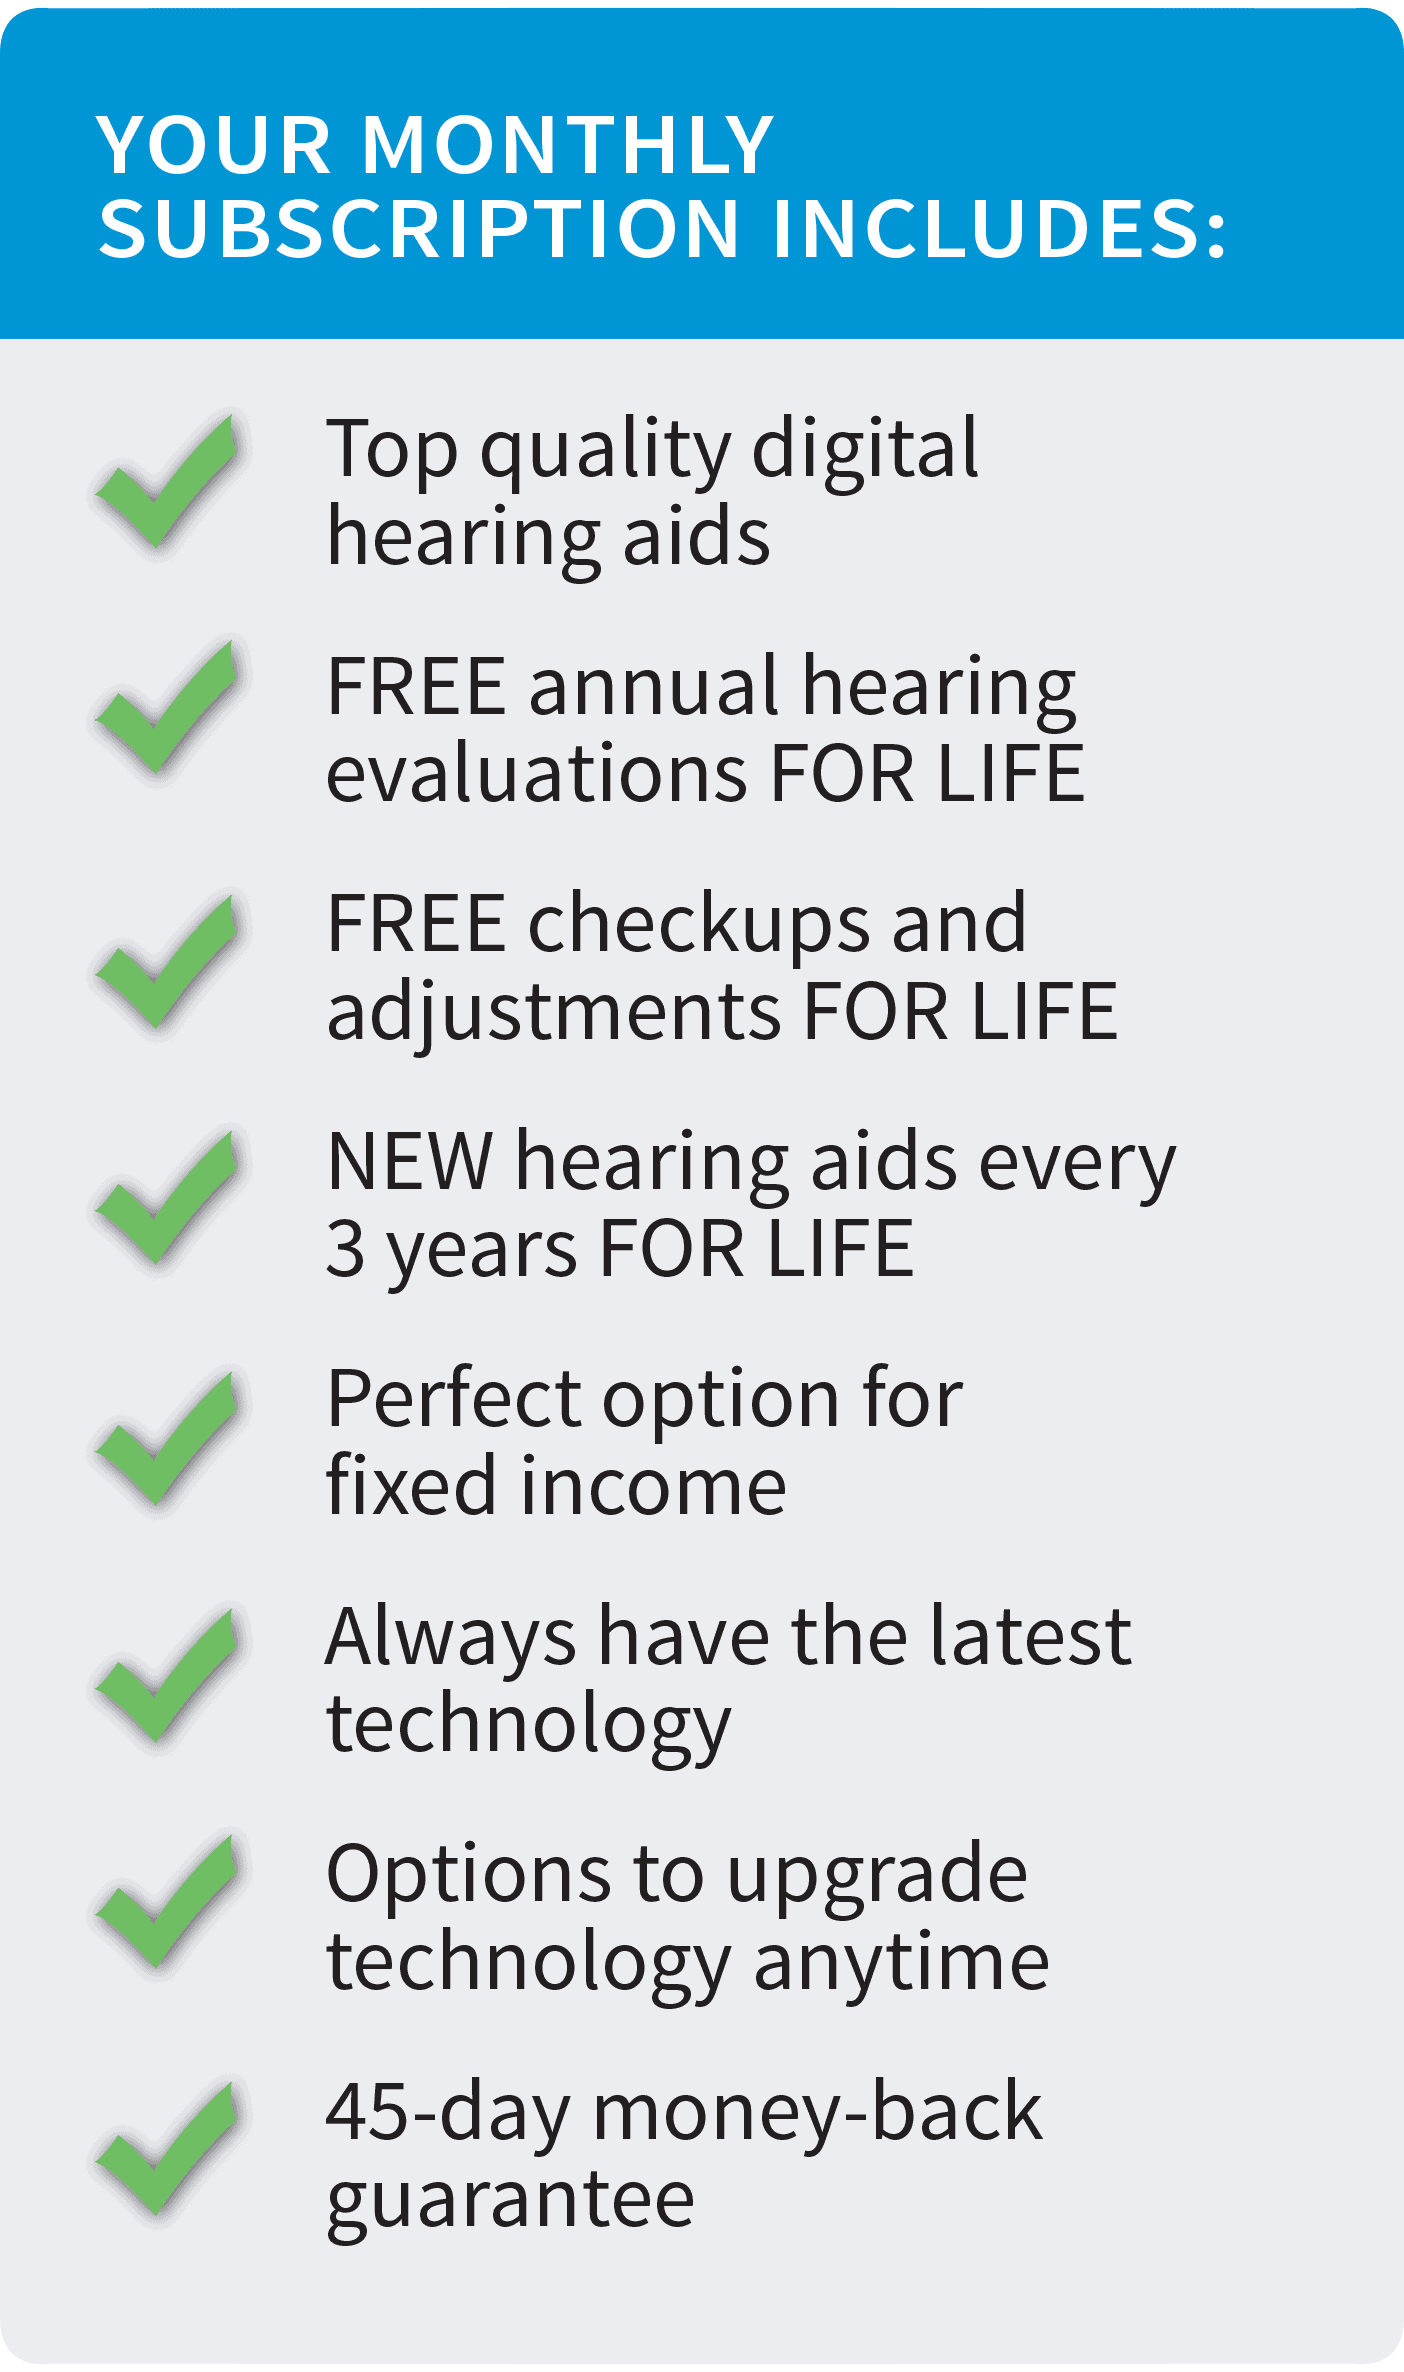 Lease your hearing aids